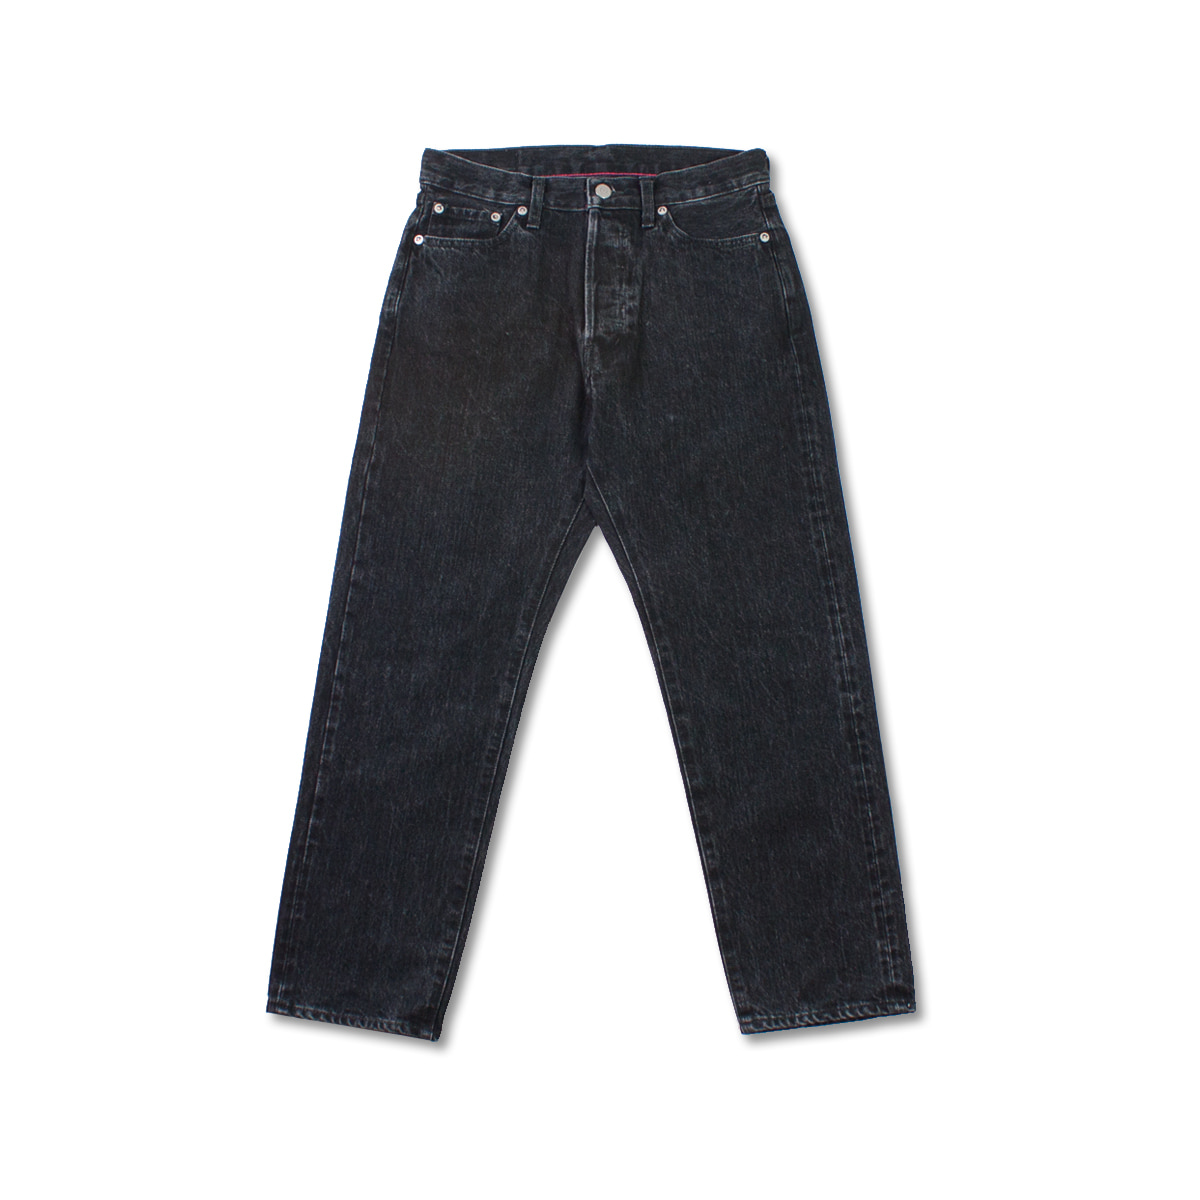 [ORDINARY FITS] 5PKT ANKLE DENIM 'BLACK USED'